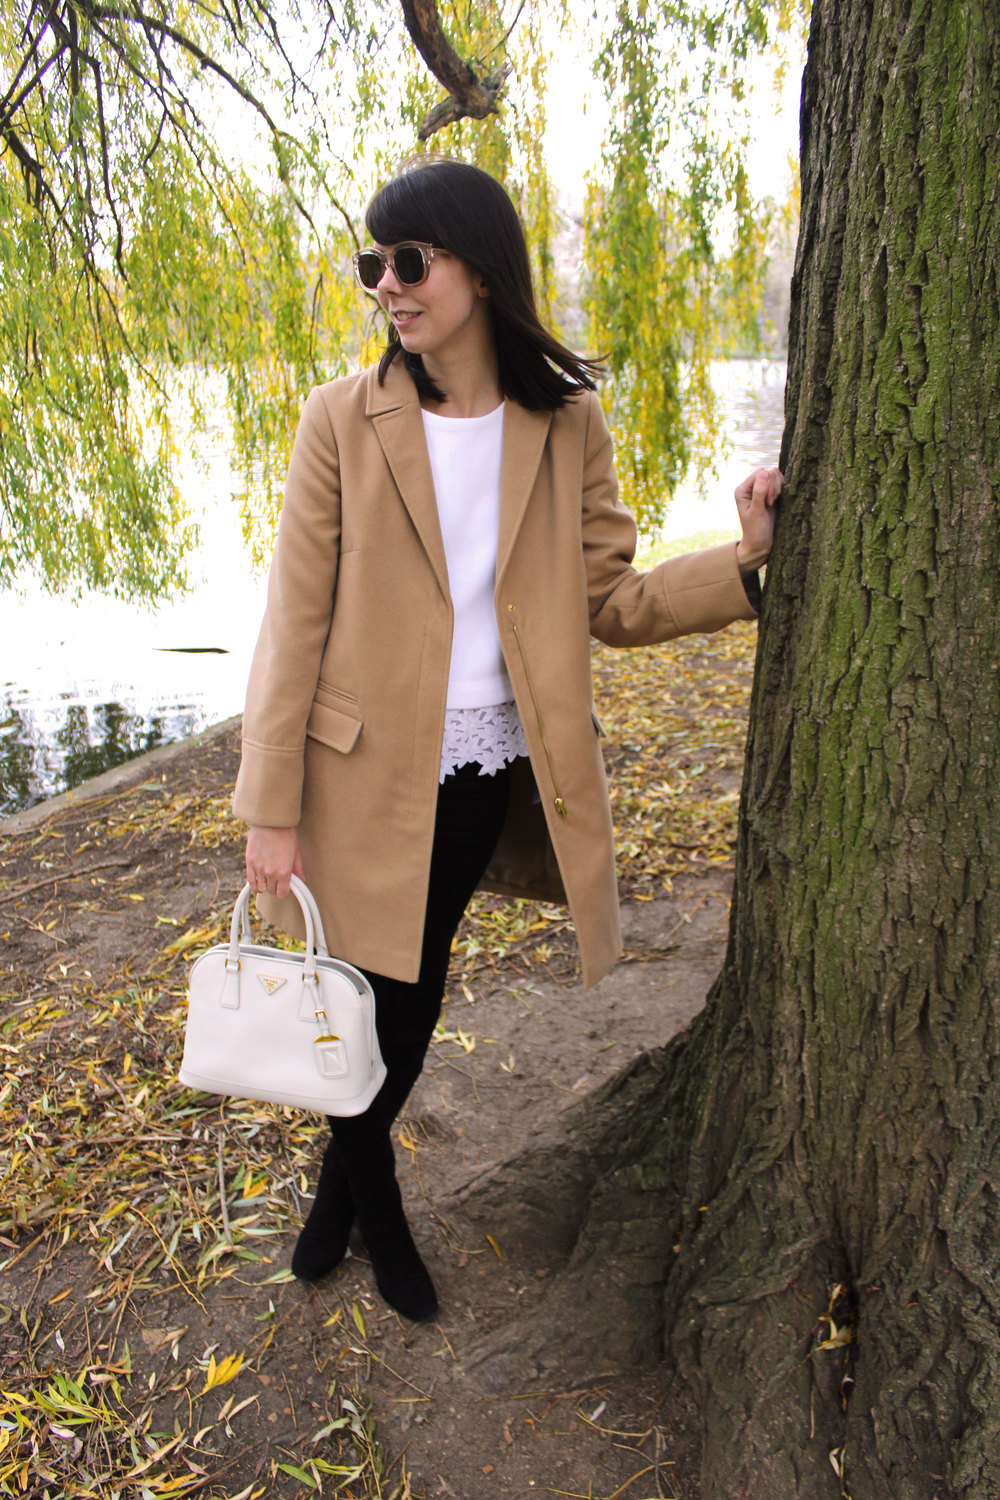 Standing beneath the willow trees in Regent's park wearing suede over the knee boots, a camel coat, and a Prada bag.